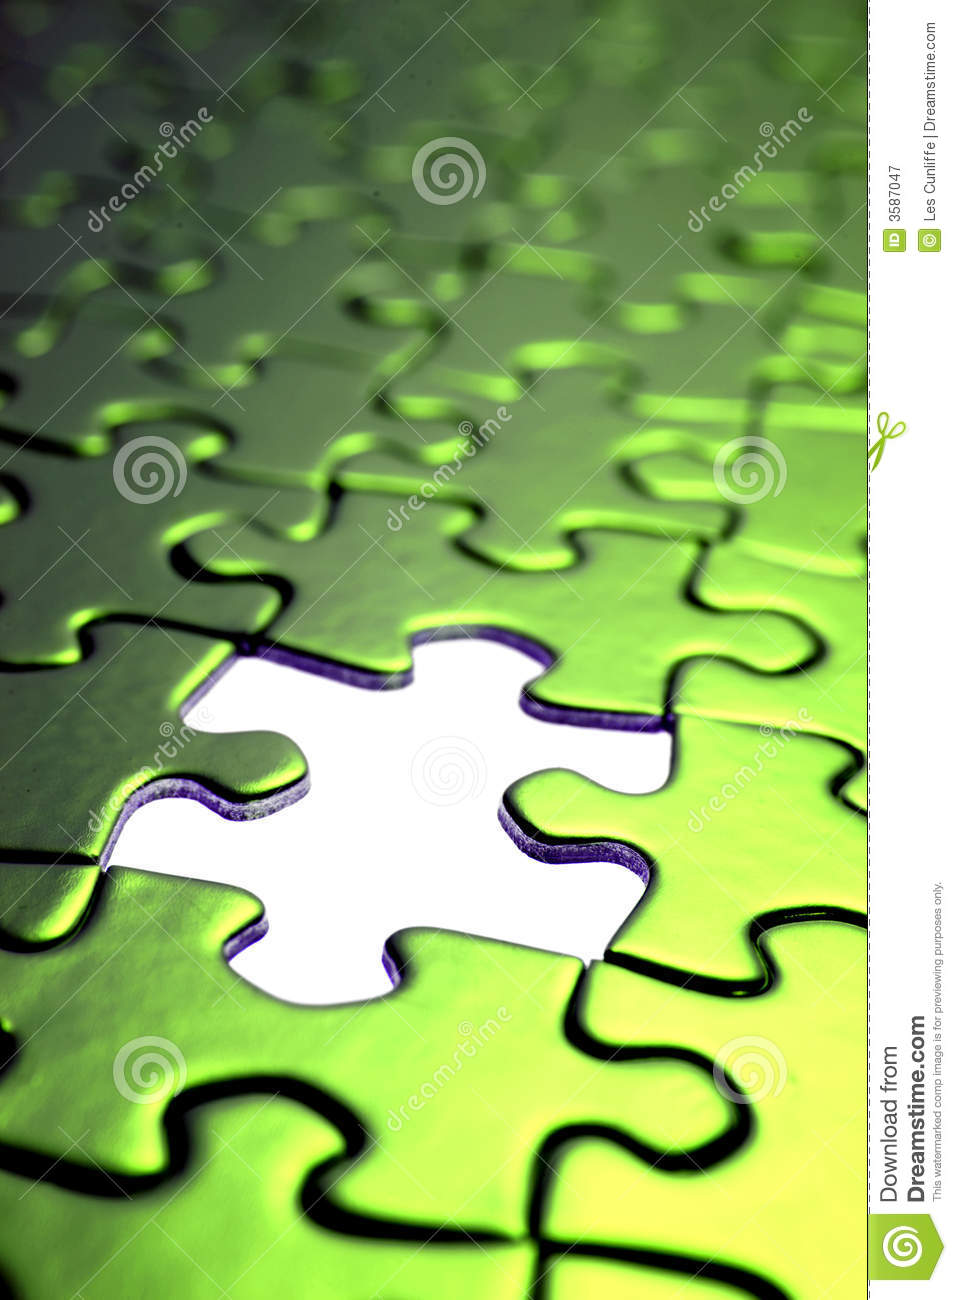 green puzzle pieces royalty free stock photography